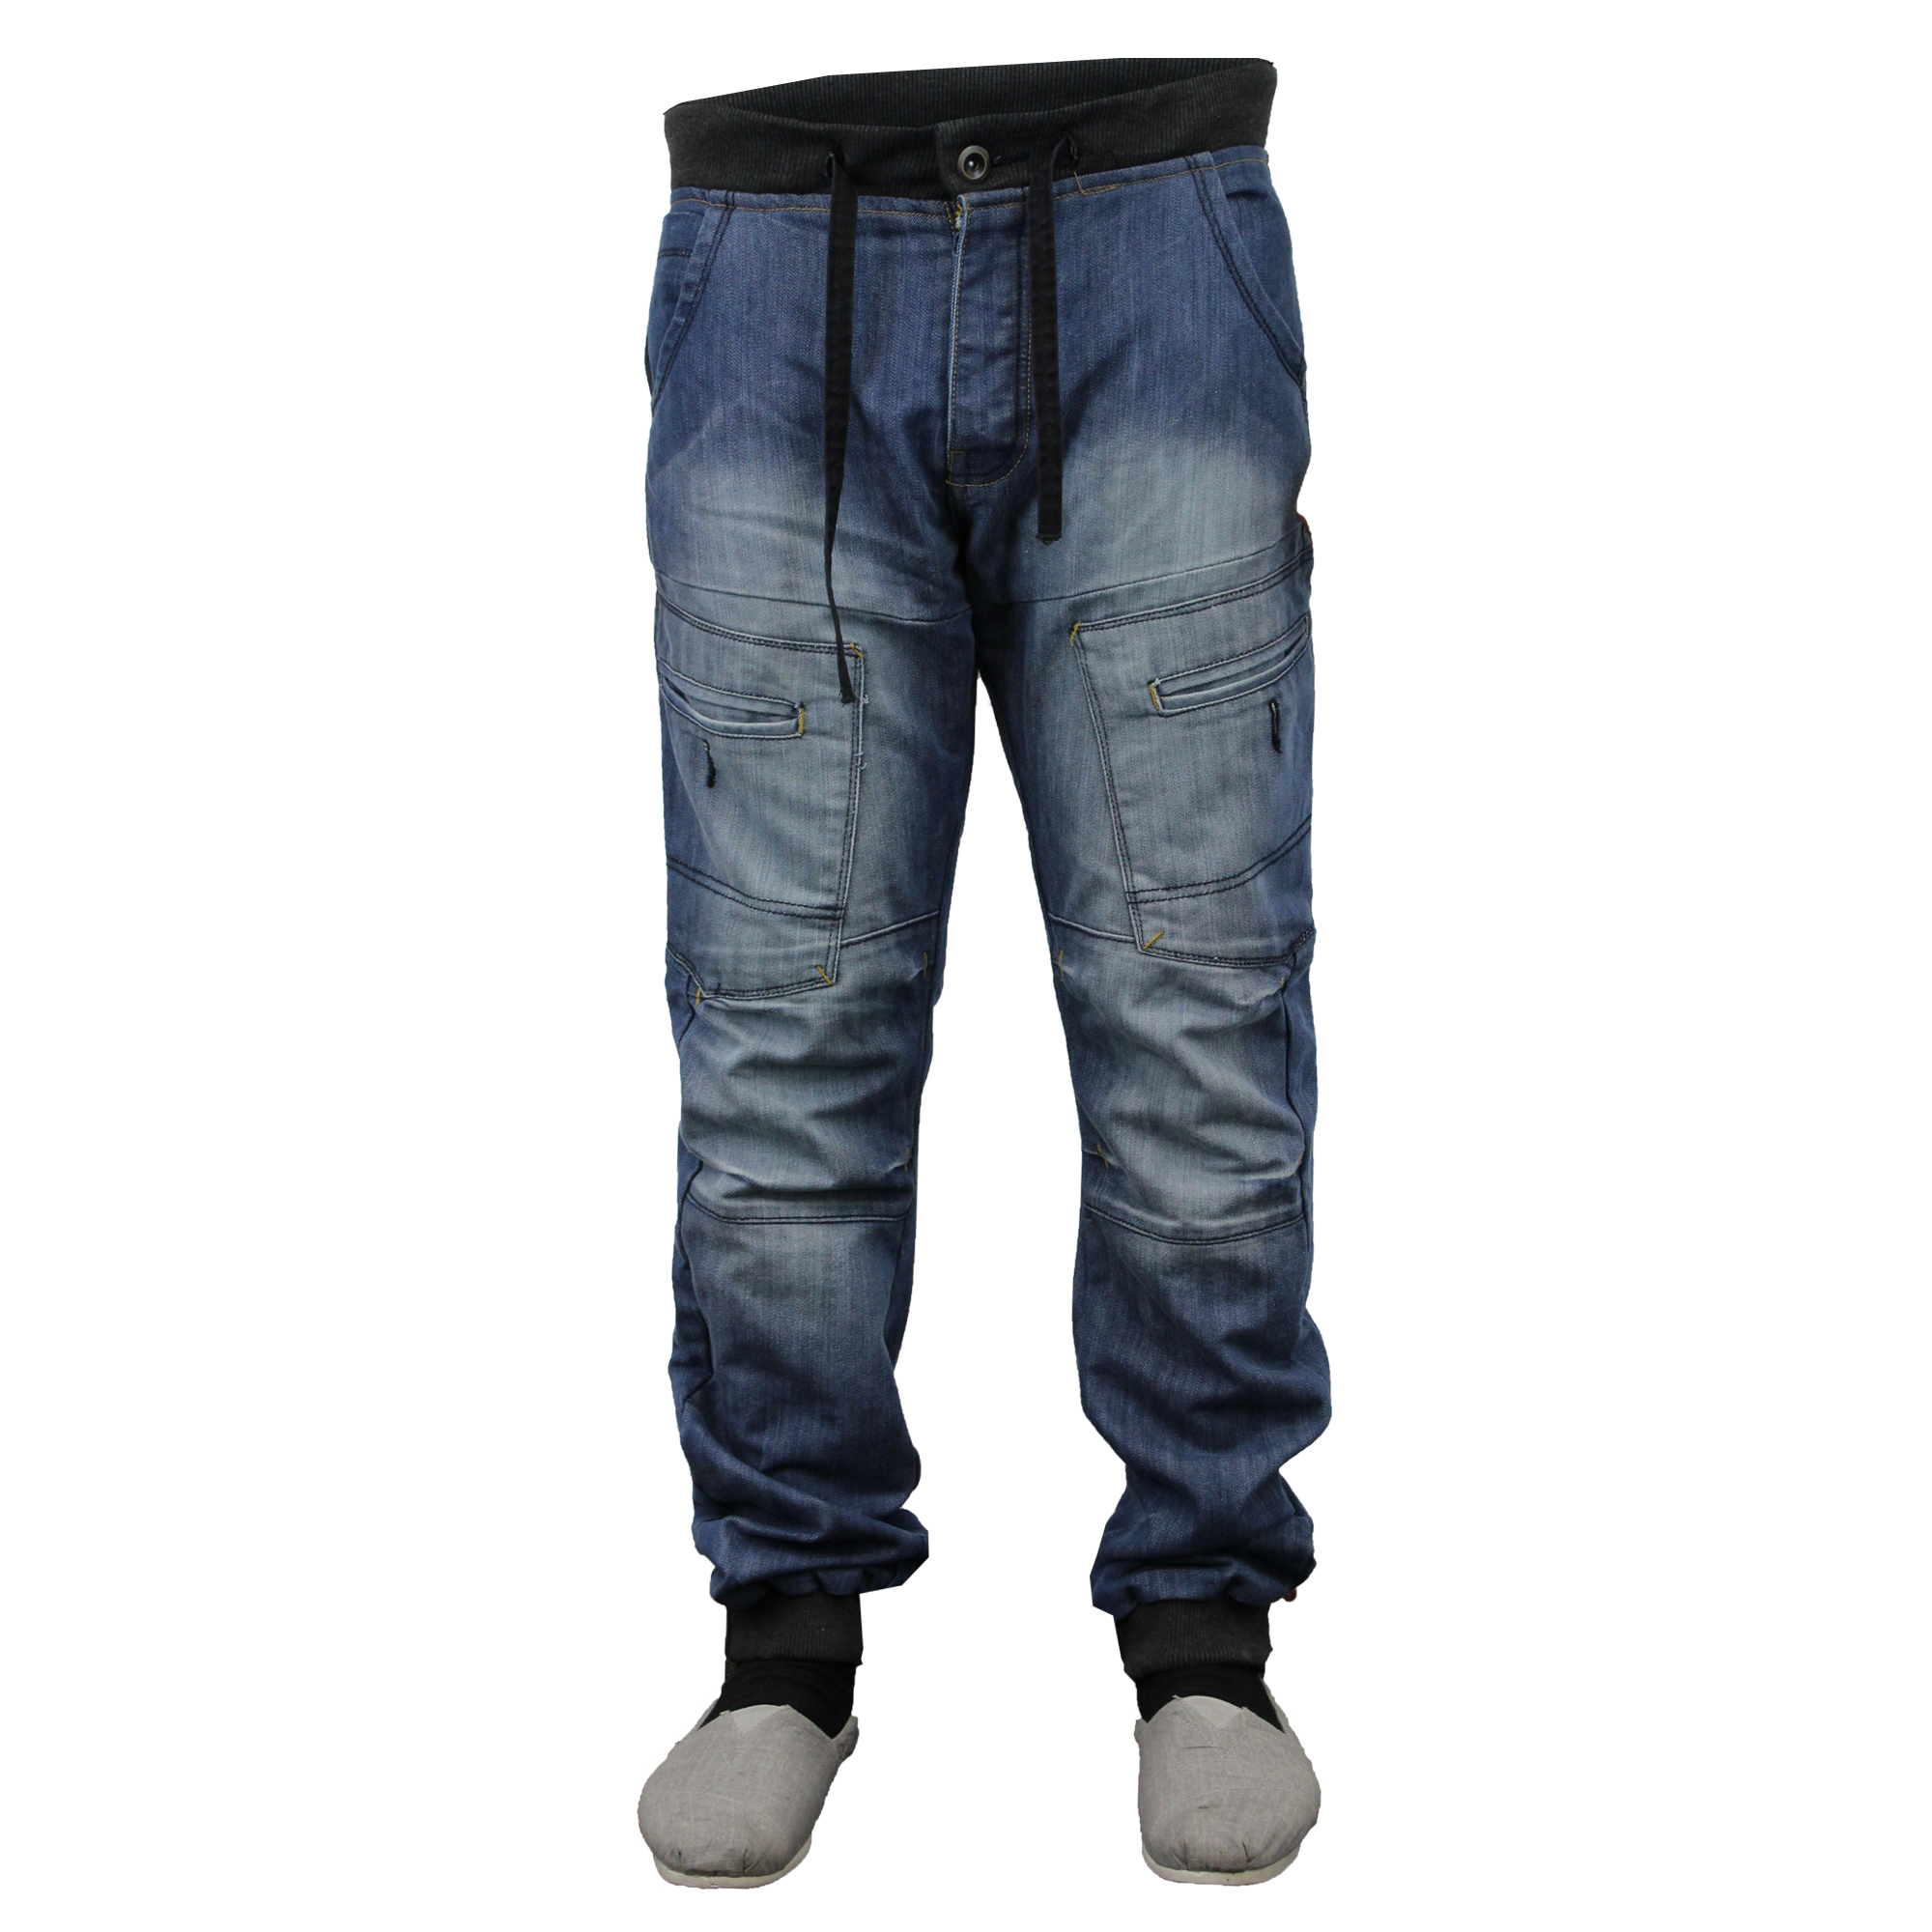 Aug 21, · A flat-front pant (think most jeans and the suit pants worn on Esquire covers) will make trim guys look even trimmer, and help the average guy appear less schlumpy. 2. There is a fine line between.